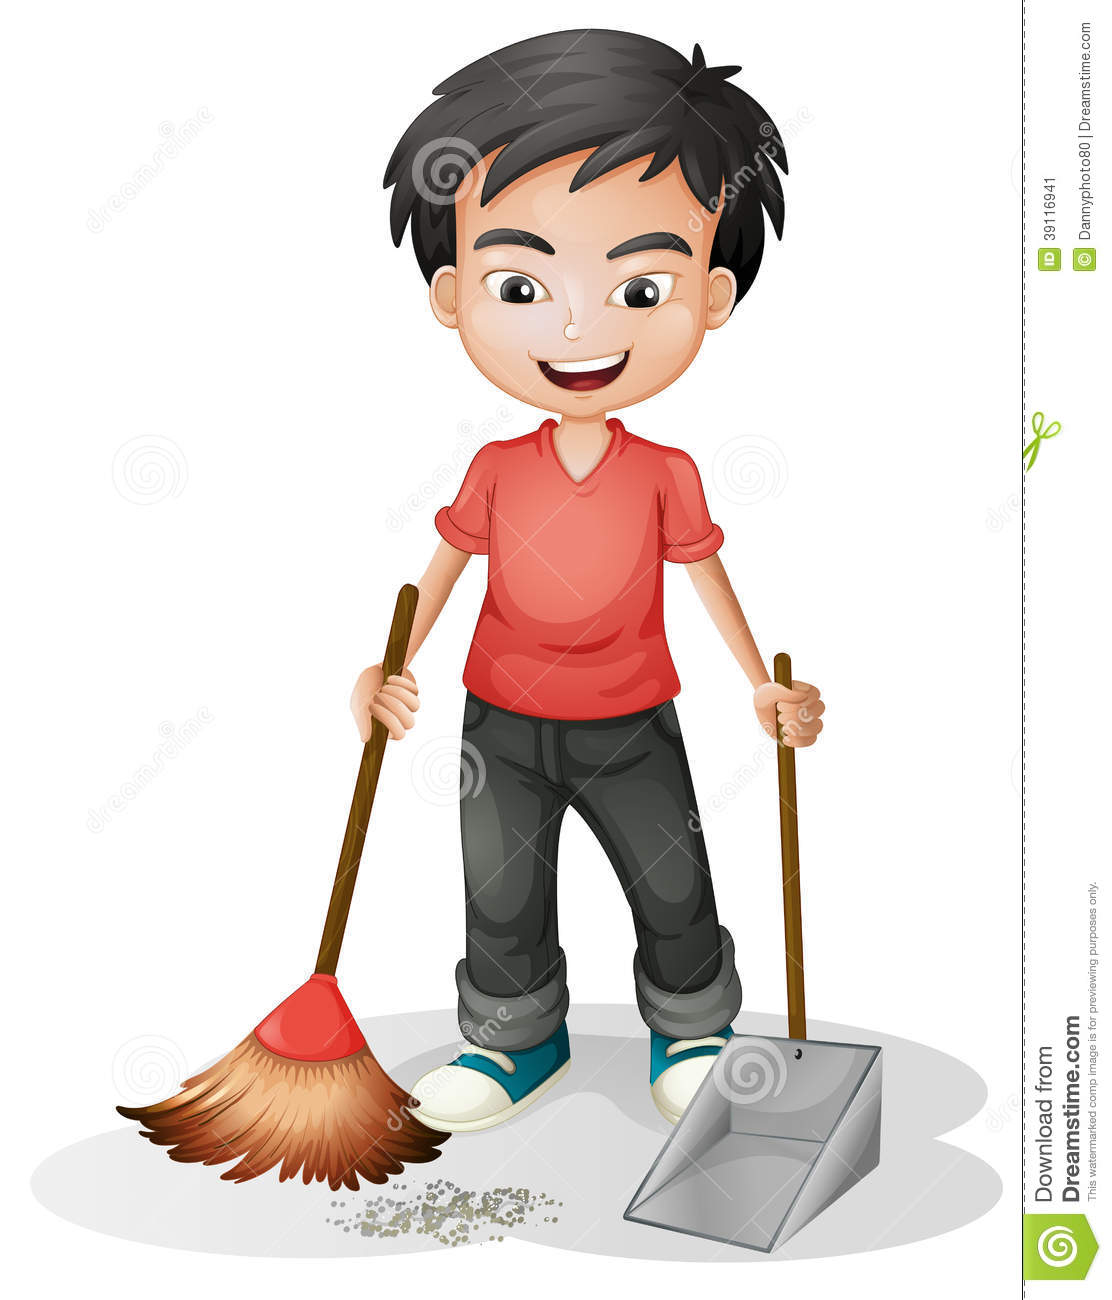 A boy sweeping the dirt stock vector. Illustration of ...